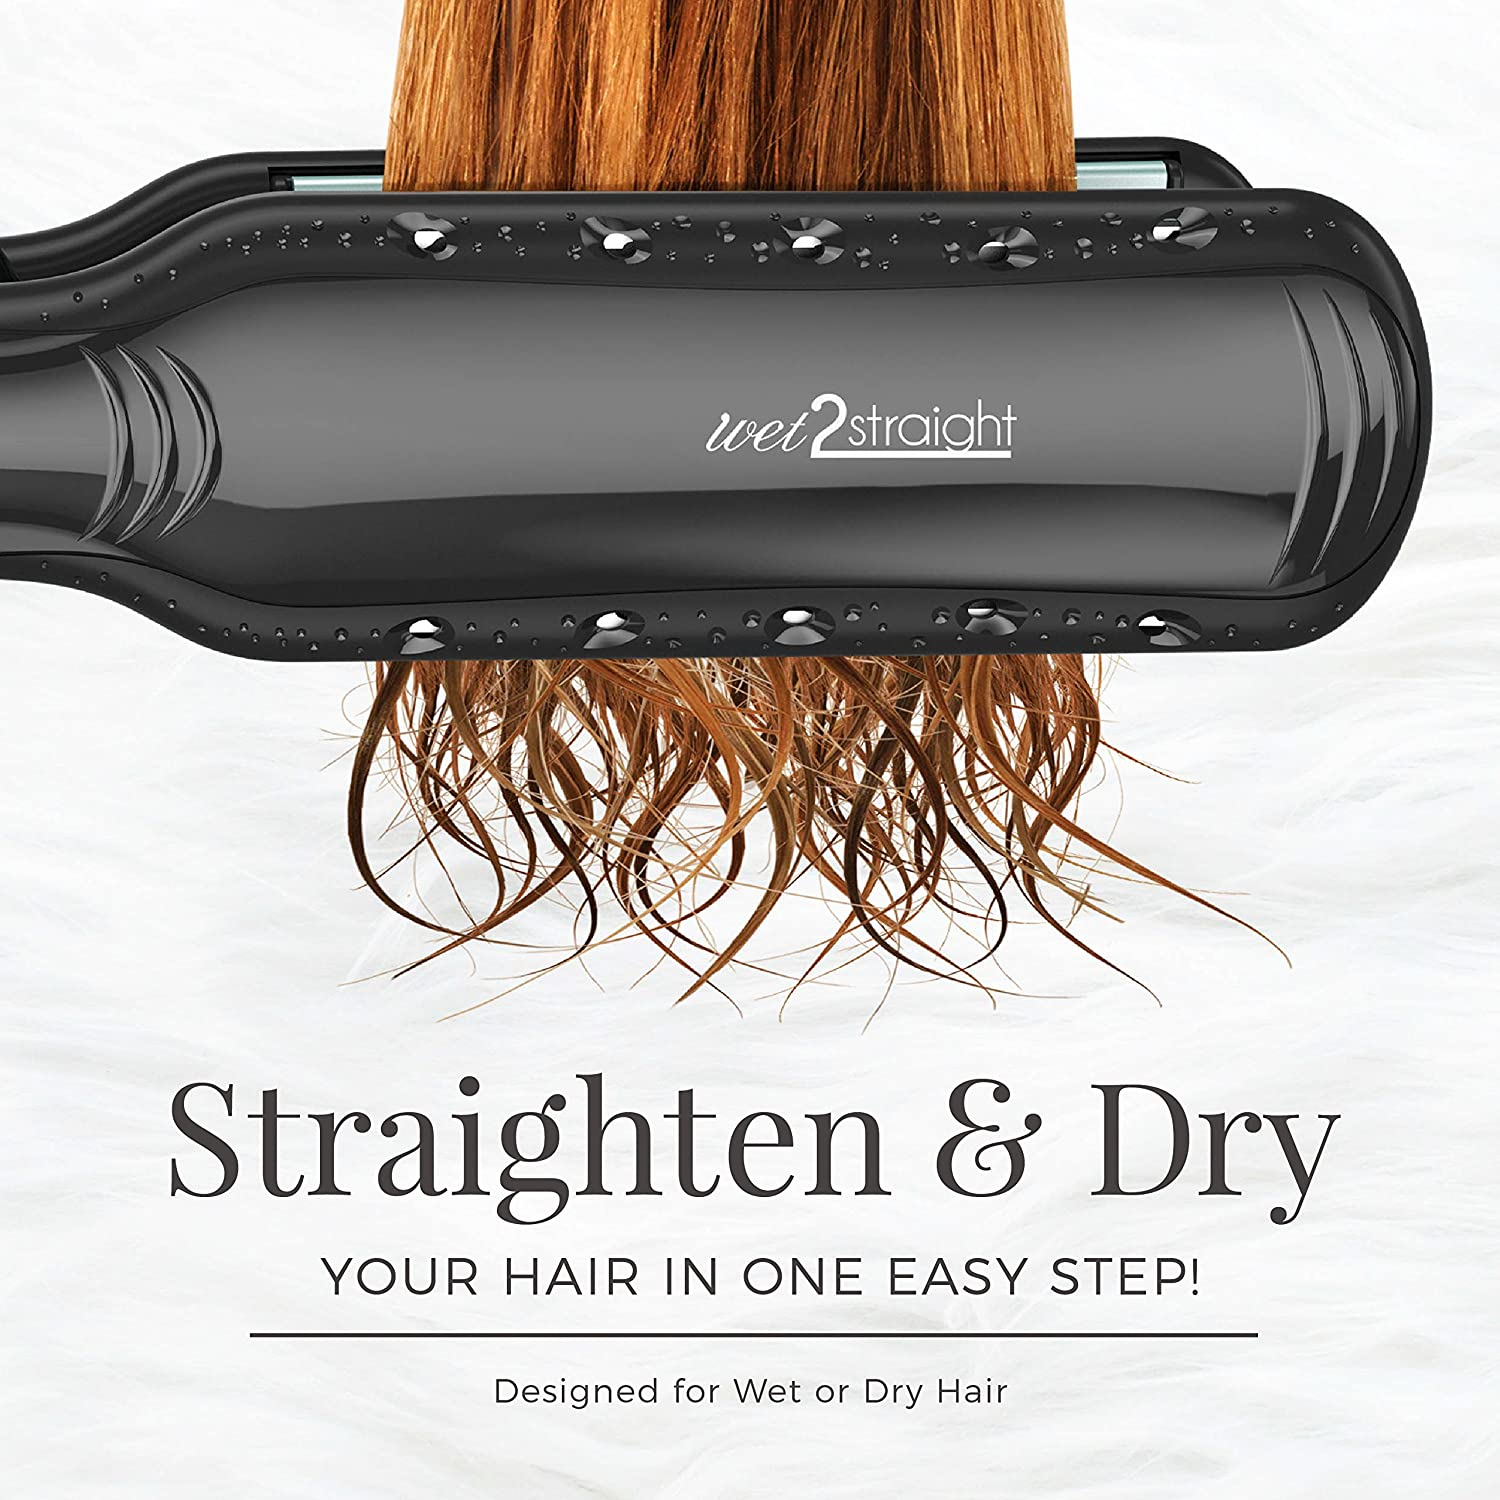 Wet2Straight S7350 Wide Plate Hair Straightener | Remington